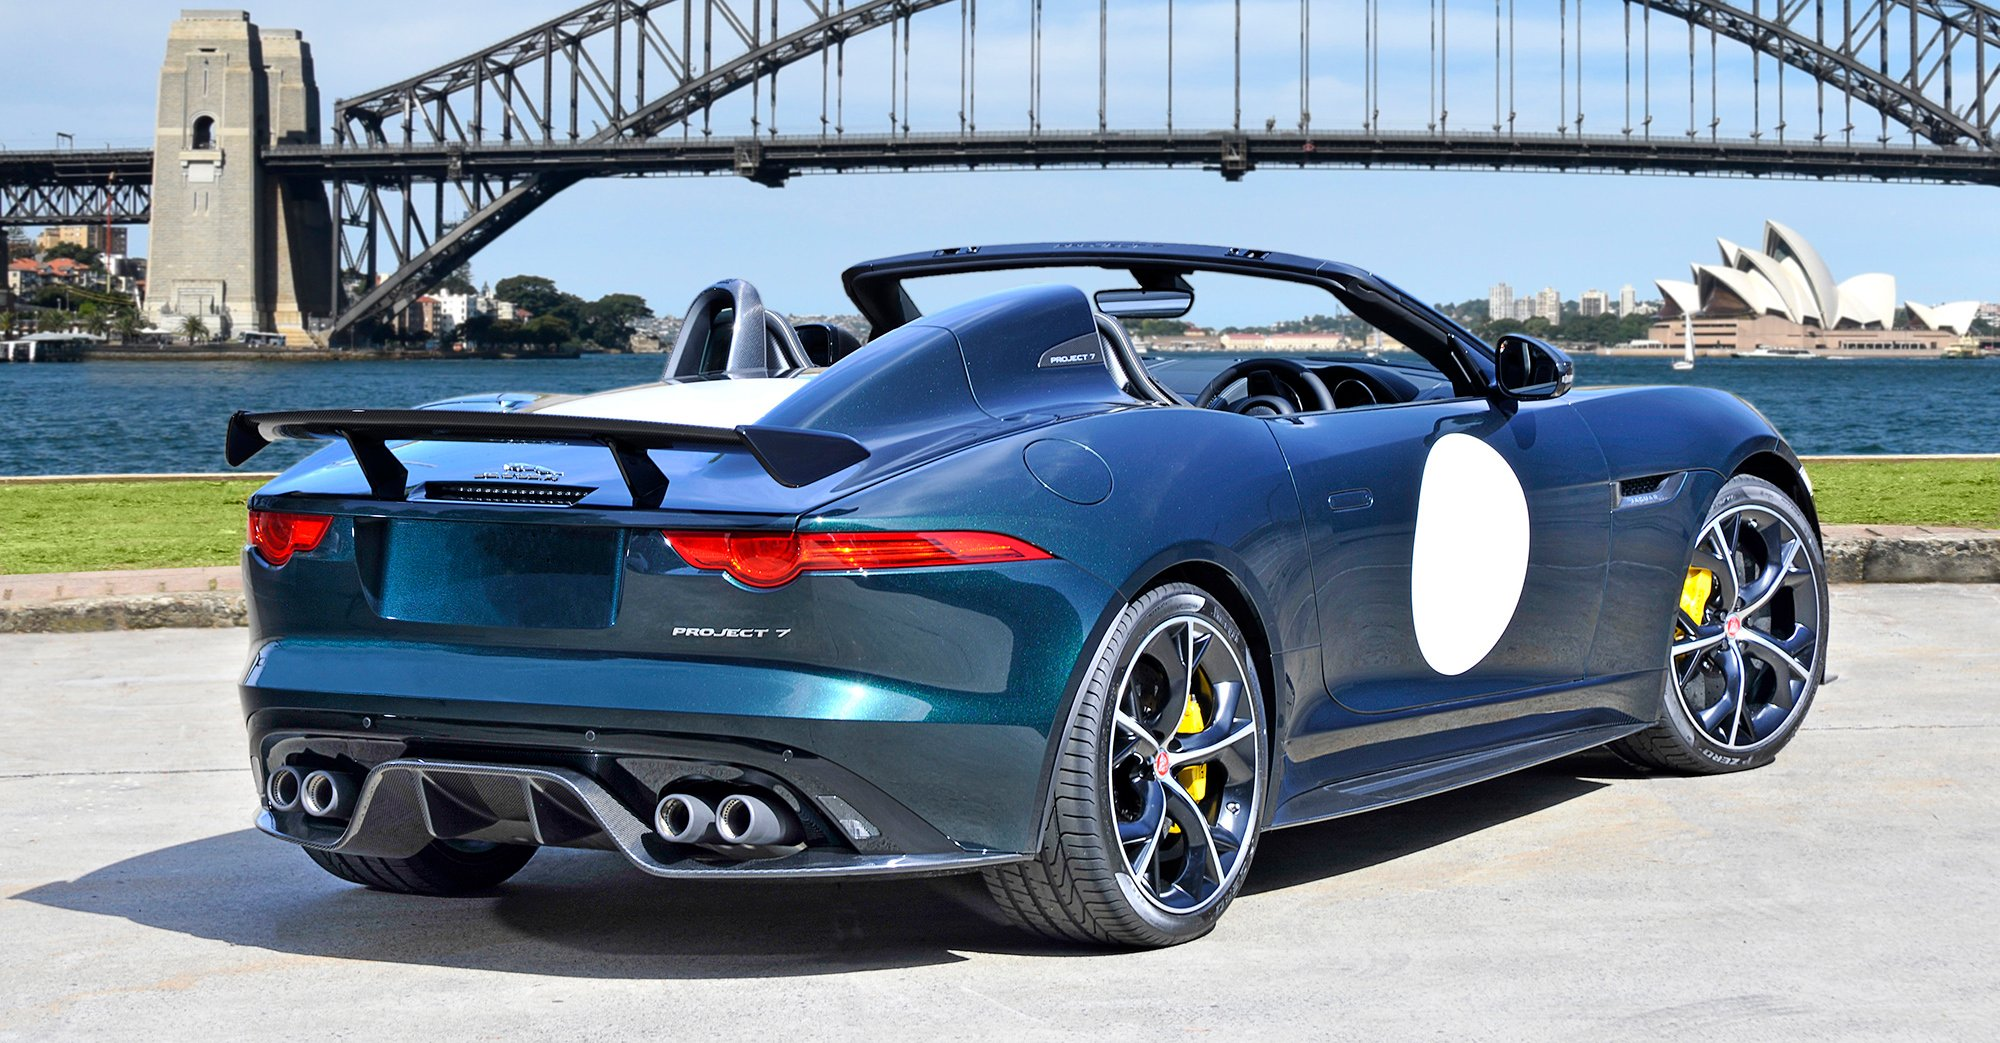 jaguar f type project 7 arrives in australia photos 1 of 3. Black Bedroom Furniture Sets. Home Design Ideas